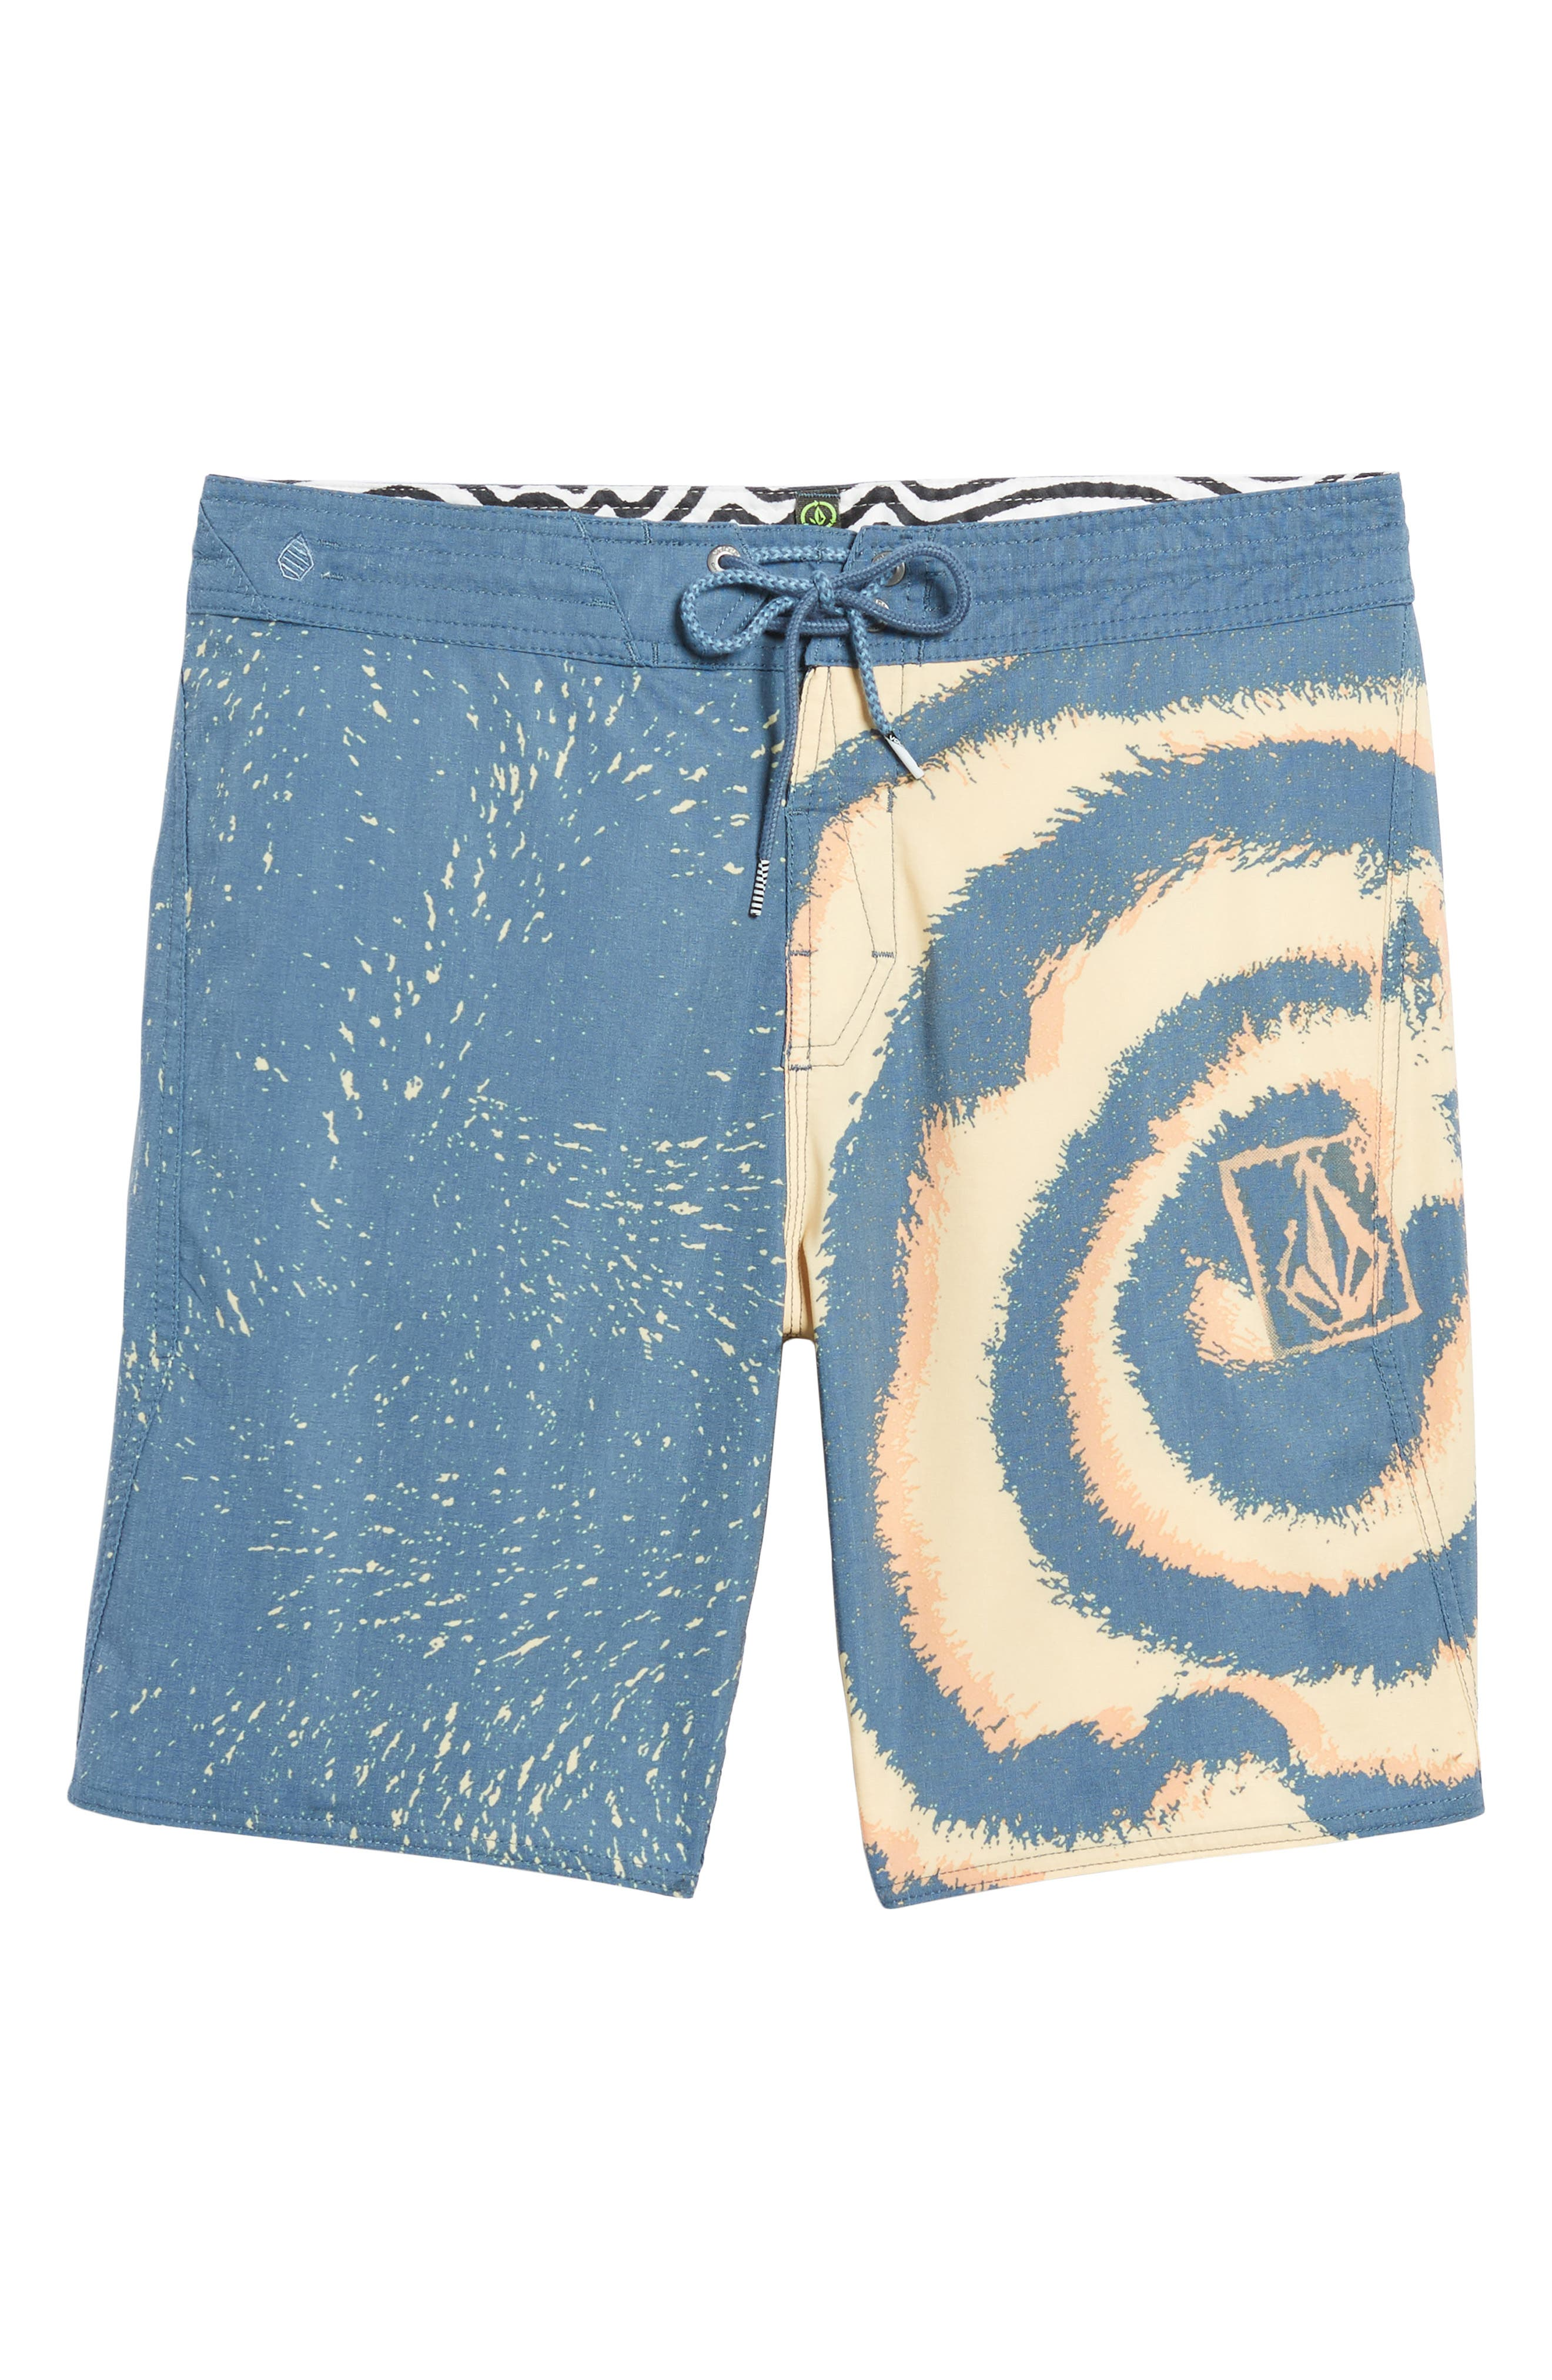 VOLCOM,                             Psyched Stoney Swim Trunks,                             Alternate thumbnail 6, color,                             400